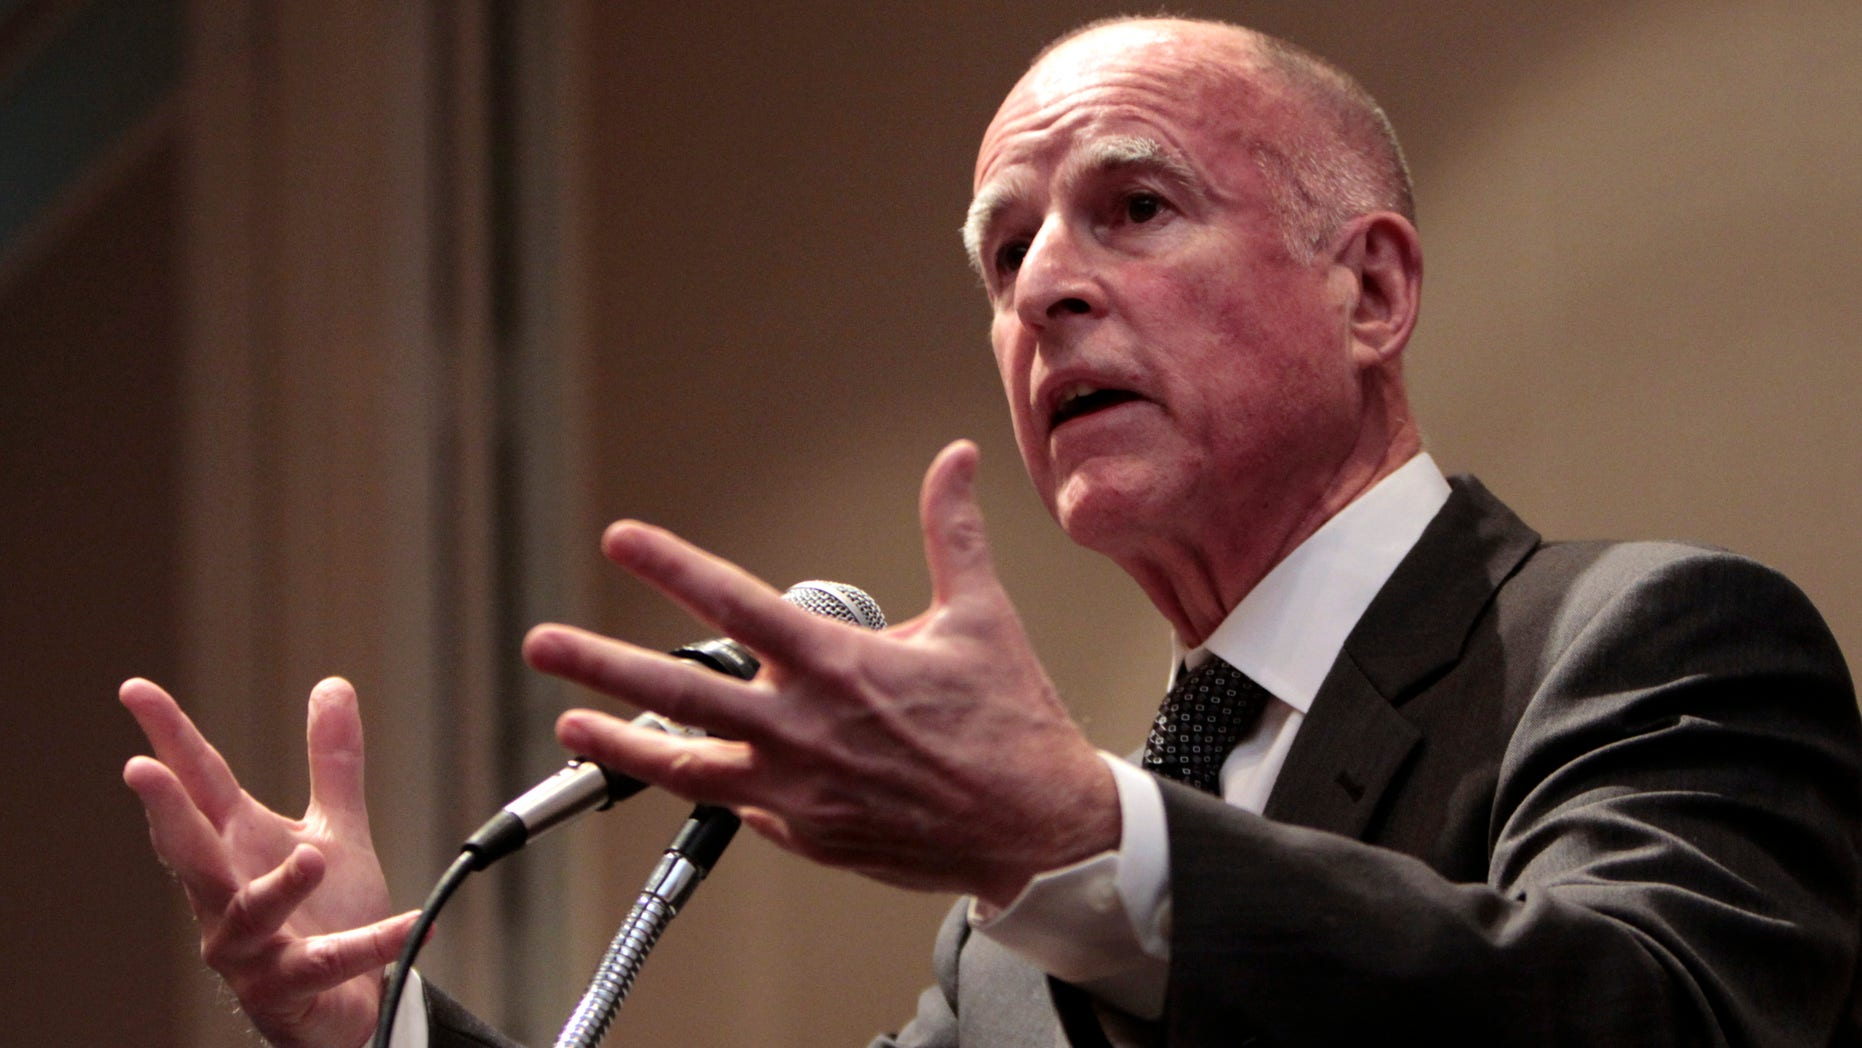 Gov. Jerry Brown speaks at the League of California Cities conference in Sacramento, Calif., Wednesday, Jan. 19, 2011.  (AP)